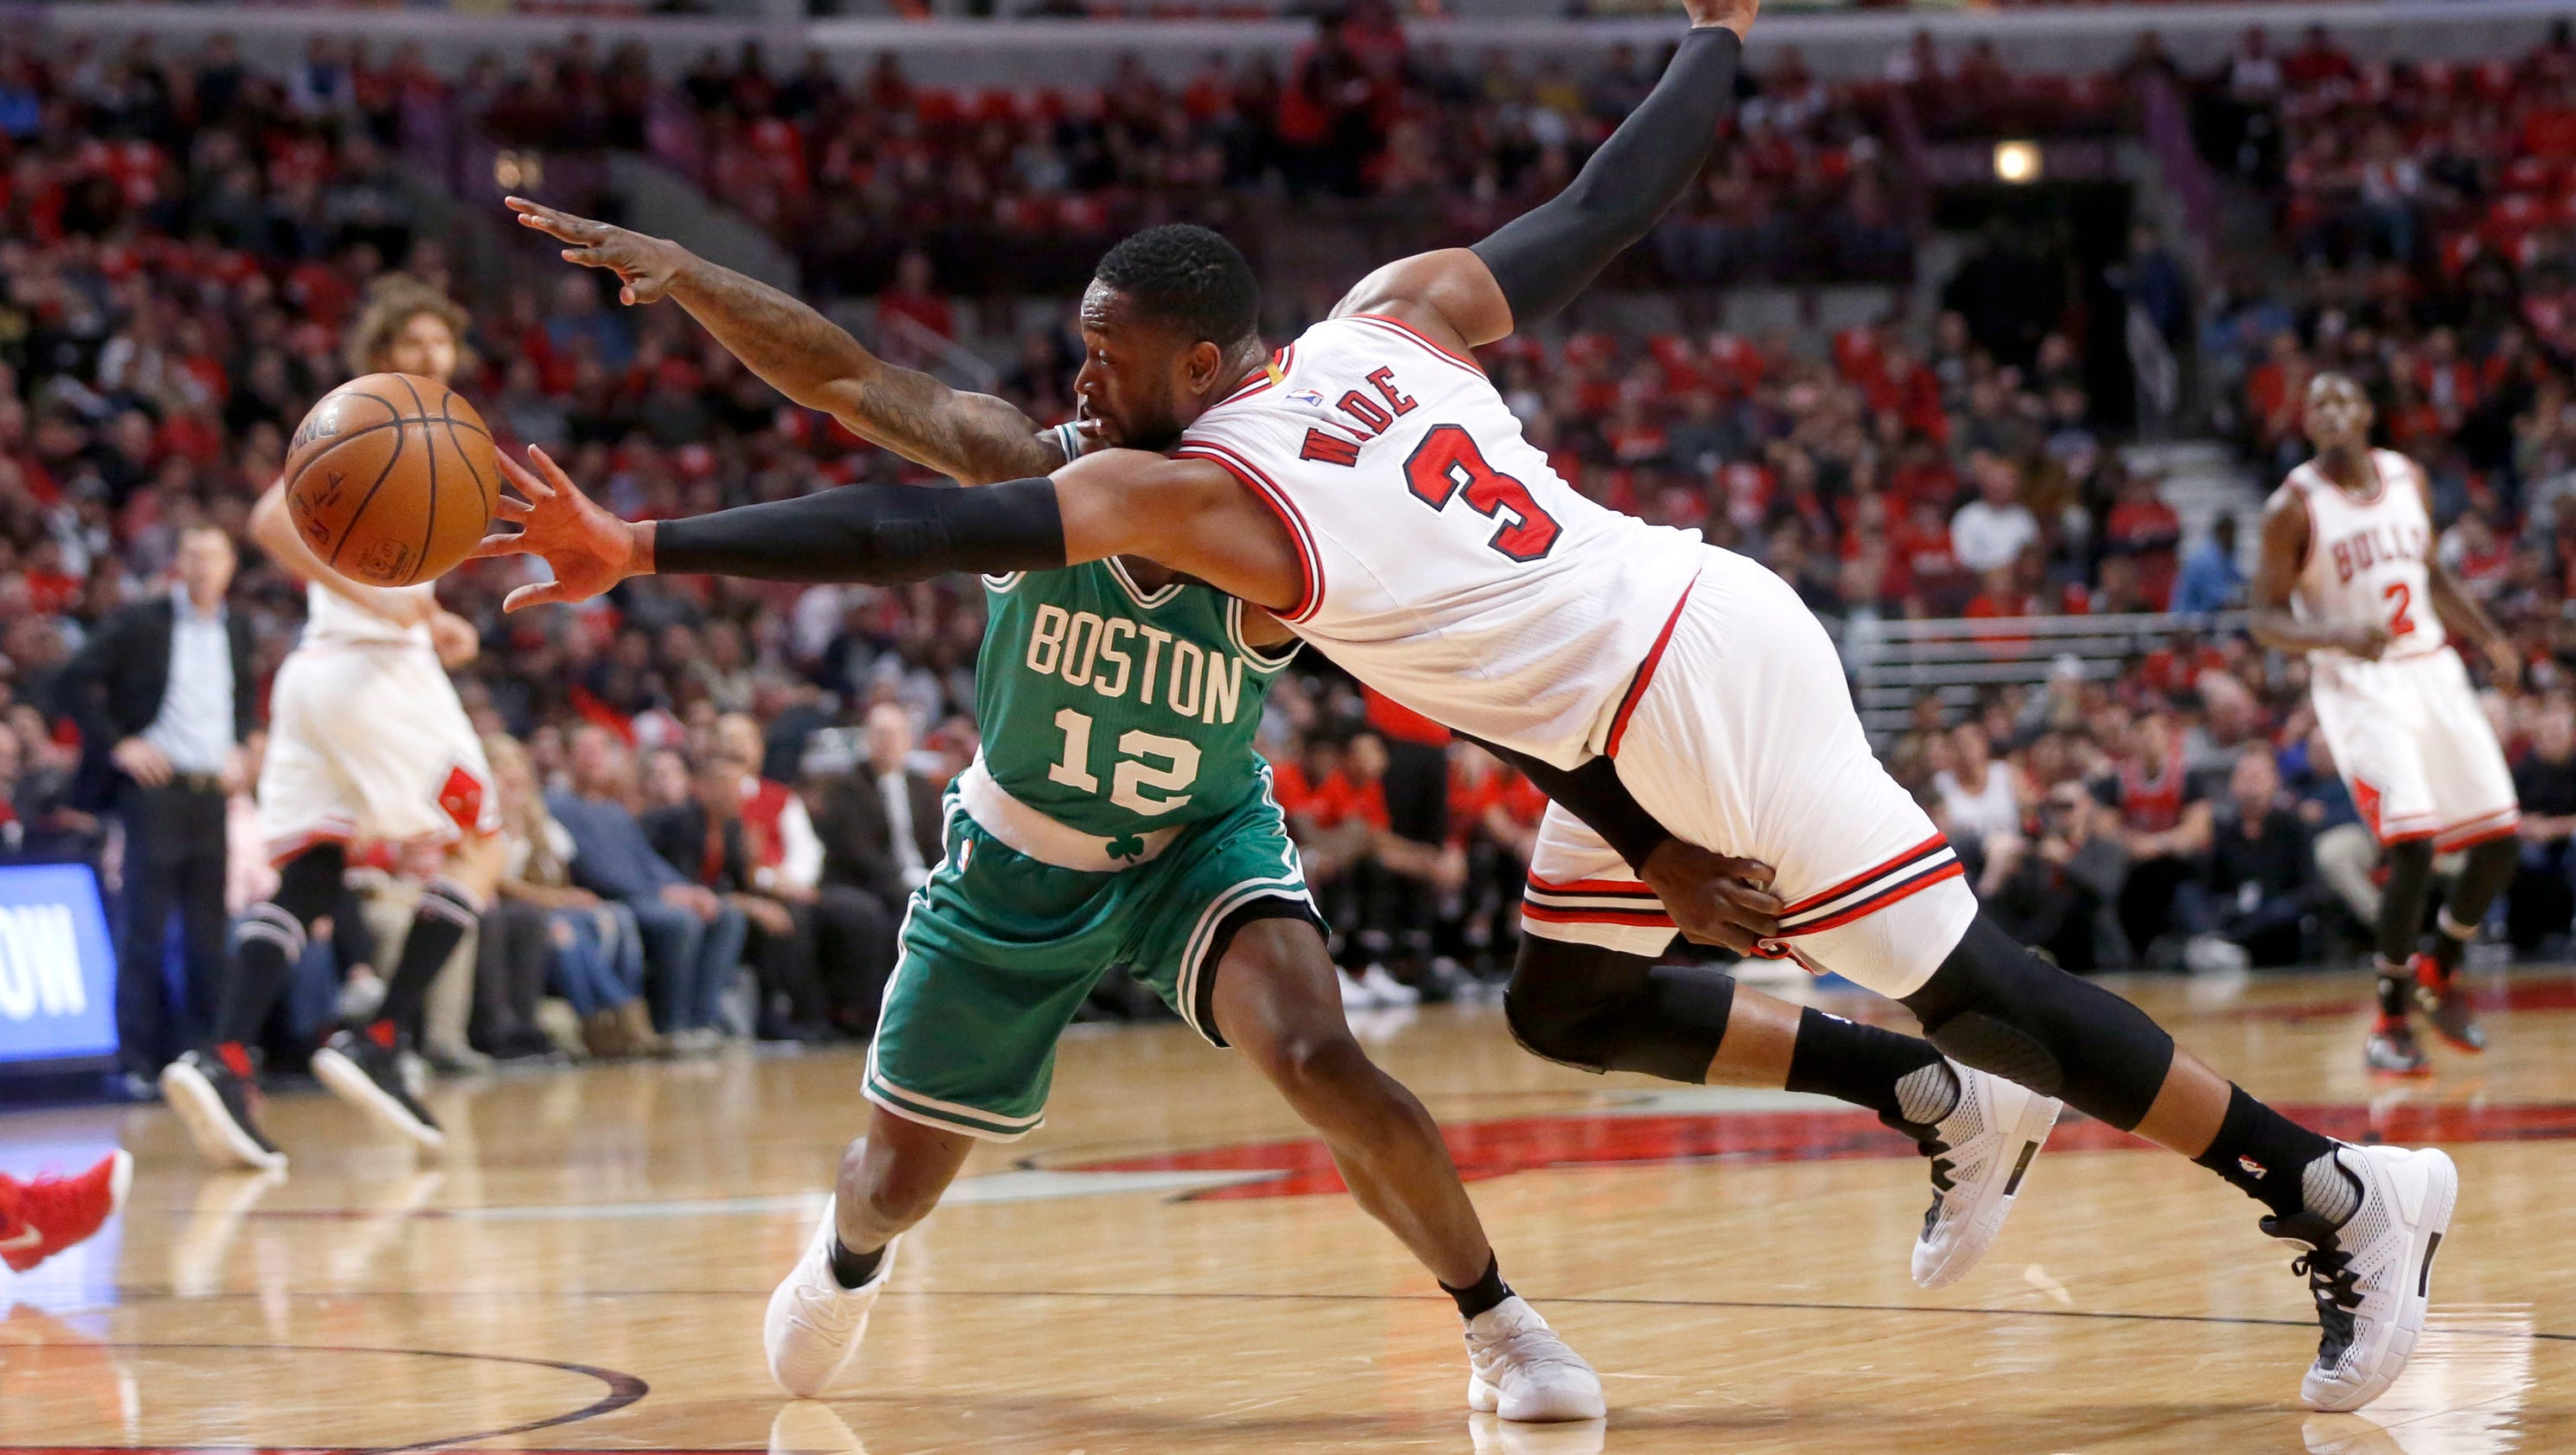 248863d36e7 Al Horford had 18 points and eight rebounds, Isaiah Thomas scored 16, and  the top-seeded Celtics beat the Chicago Bulls, 104-87, on Friday night  after ...